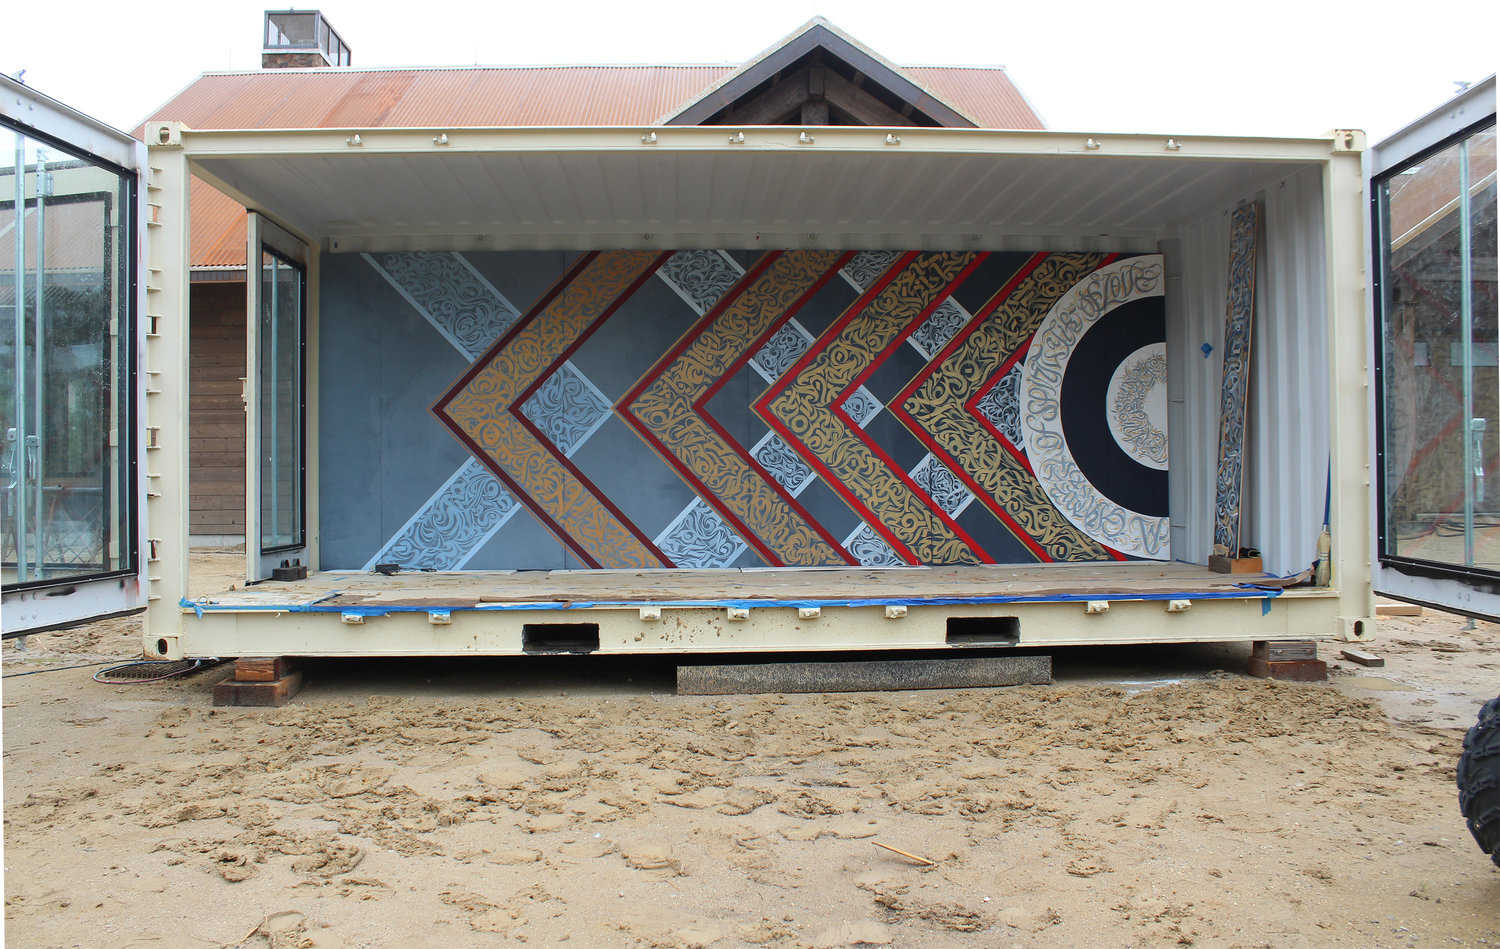 Studio Protos | Mobile Container Office Mural